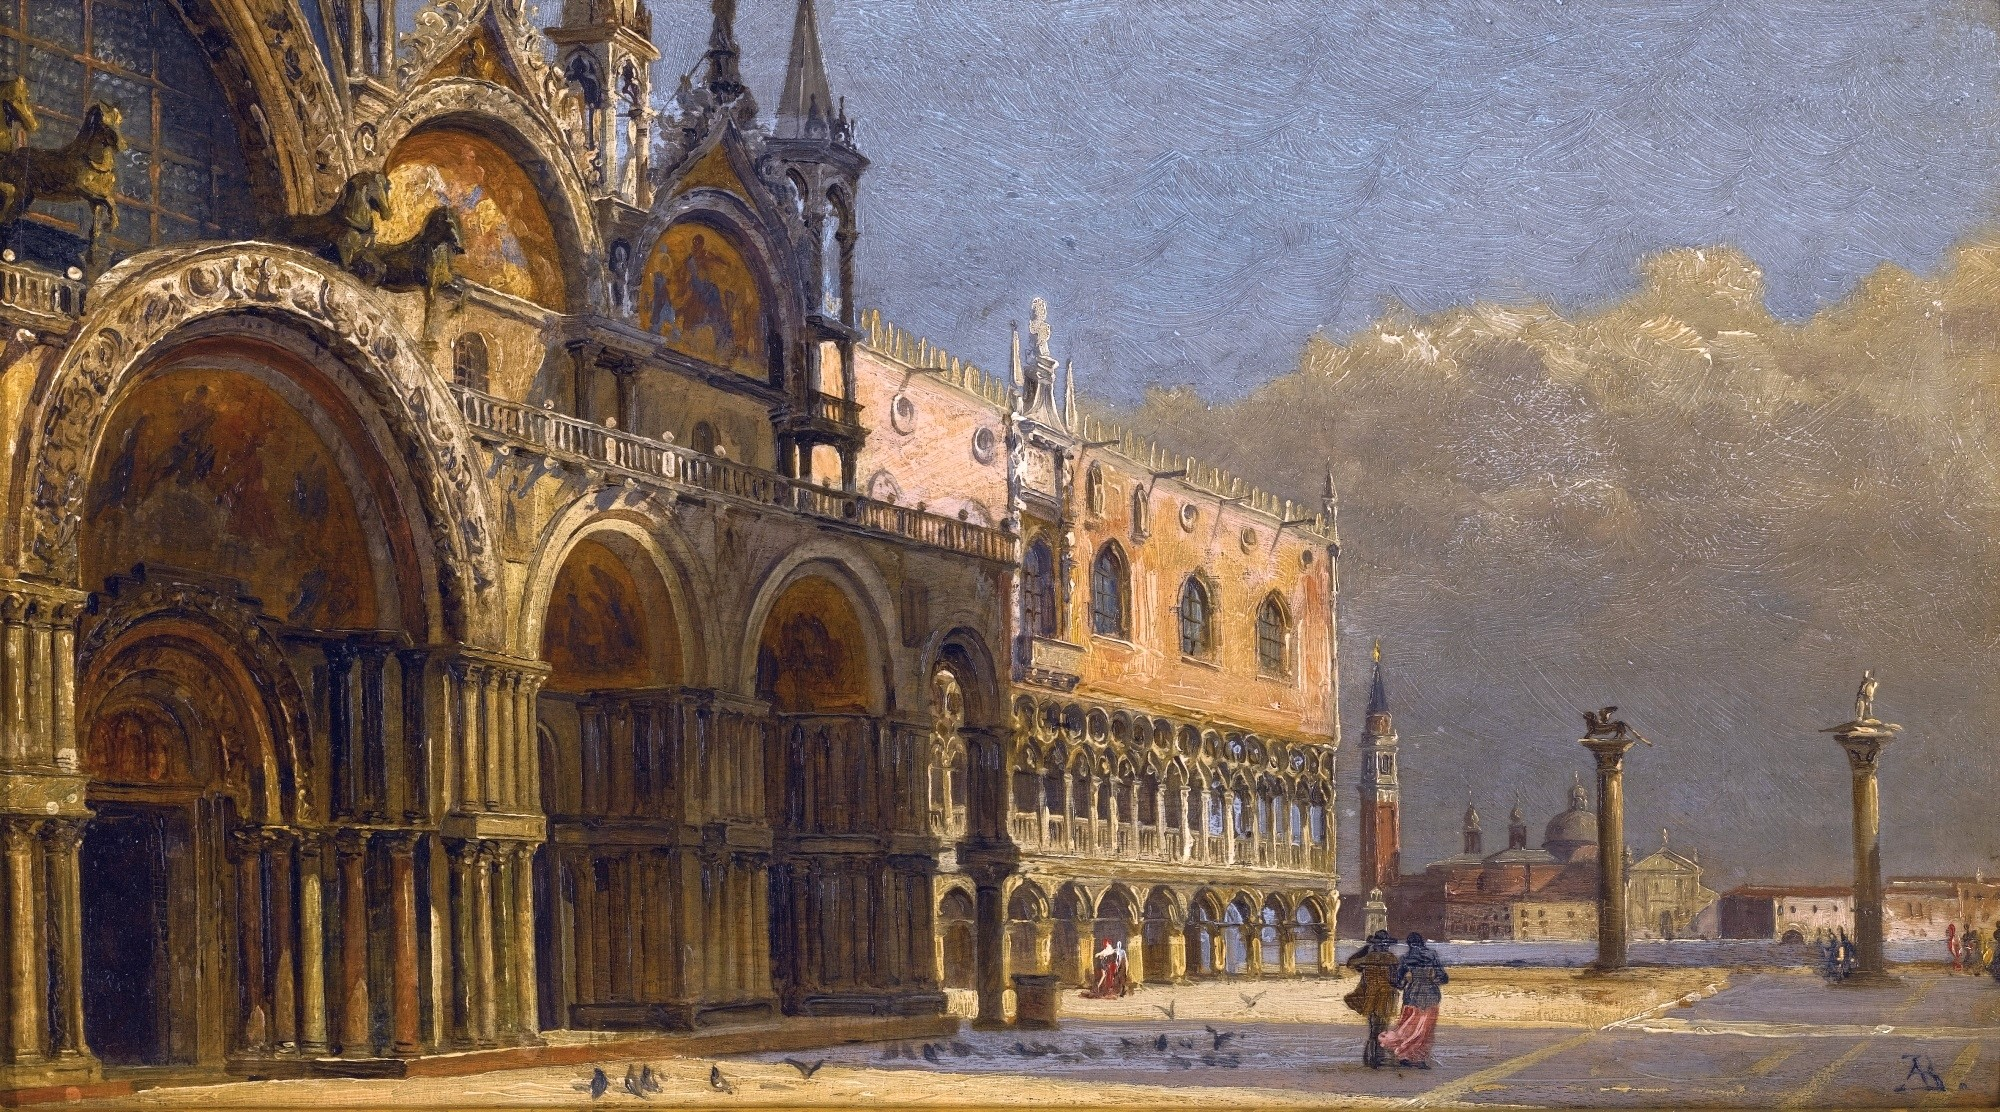 A Windy Day, St. Mark's Square, by Antonietta Brandeis